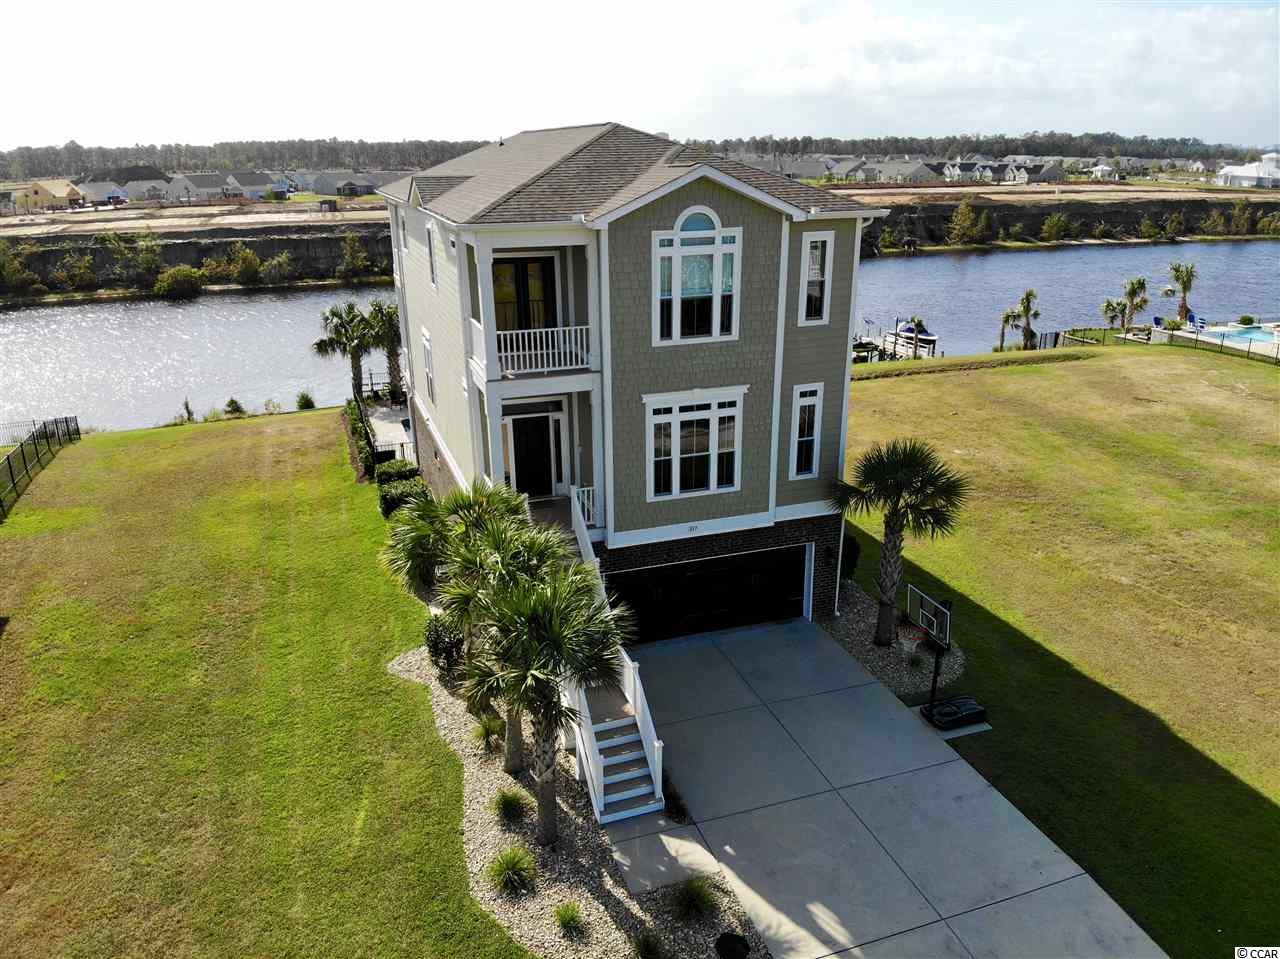 Exquisite 5 bedroom 4 bath home on the Intracoastal Waterway in the charming community of The Battery On The Waterway! This immaculate home is 3 stories with an elevator and has a rear porch on every story to enjoy those picturesque views of the waterway! Beautiful hardwood floors and crown moulding run throughout the main living areas. The main floor, which is the second floor, hosts the open concept living, dining, and kitchen. In the gorgeous kitchen there are stainless steel appliances including a gas range, a large walk-in pantry, granite countertops, and plenty of cabinet space! There is also an oversized work island with butch block countertop and a prep sink! Off the living room two sets of double doors lead out to one of the amazing porches. The main floor also has a bedroom with hardwood floors, that is currently being used as an office space and a full bath. Up on the third floor are 2 more bedrooms that share a jack and jill bath. The master suite is also on this level, featuring a tray ceiling, a very spacious walk in closet with built in shelving, and a porch all to itself! The luxurious ensuite has a whirlpool tub, double sinks with granite countertops, water closet, and a roomy glass door tiled shower with two shower heads! Down on the first floor there is an additional bedroom with a full bath, a two car garage, and a media/rec room complete with a wet bar and fridge! Outside the backyard is a dream; there is a pool with a hot tub and a large patio surrounding it, all fenced in. The incredible backyard also offers an outdoor kitchen with built in gas grill, a sink, a mini fridge, and granite countertops with enough bar seating to hold at least 6! This area also has recessed lighting and is wired for two tvs! On top of this kitchen area is a sundeck to soak up all the Carolina sunshine! Plus the convenient stone paver walk way leads right down to the private dock and boat lift! The Battery On The Waterway also has its own boat ramp for owners to util